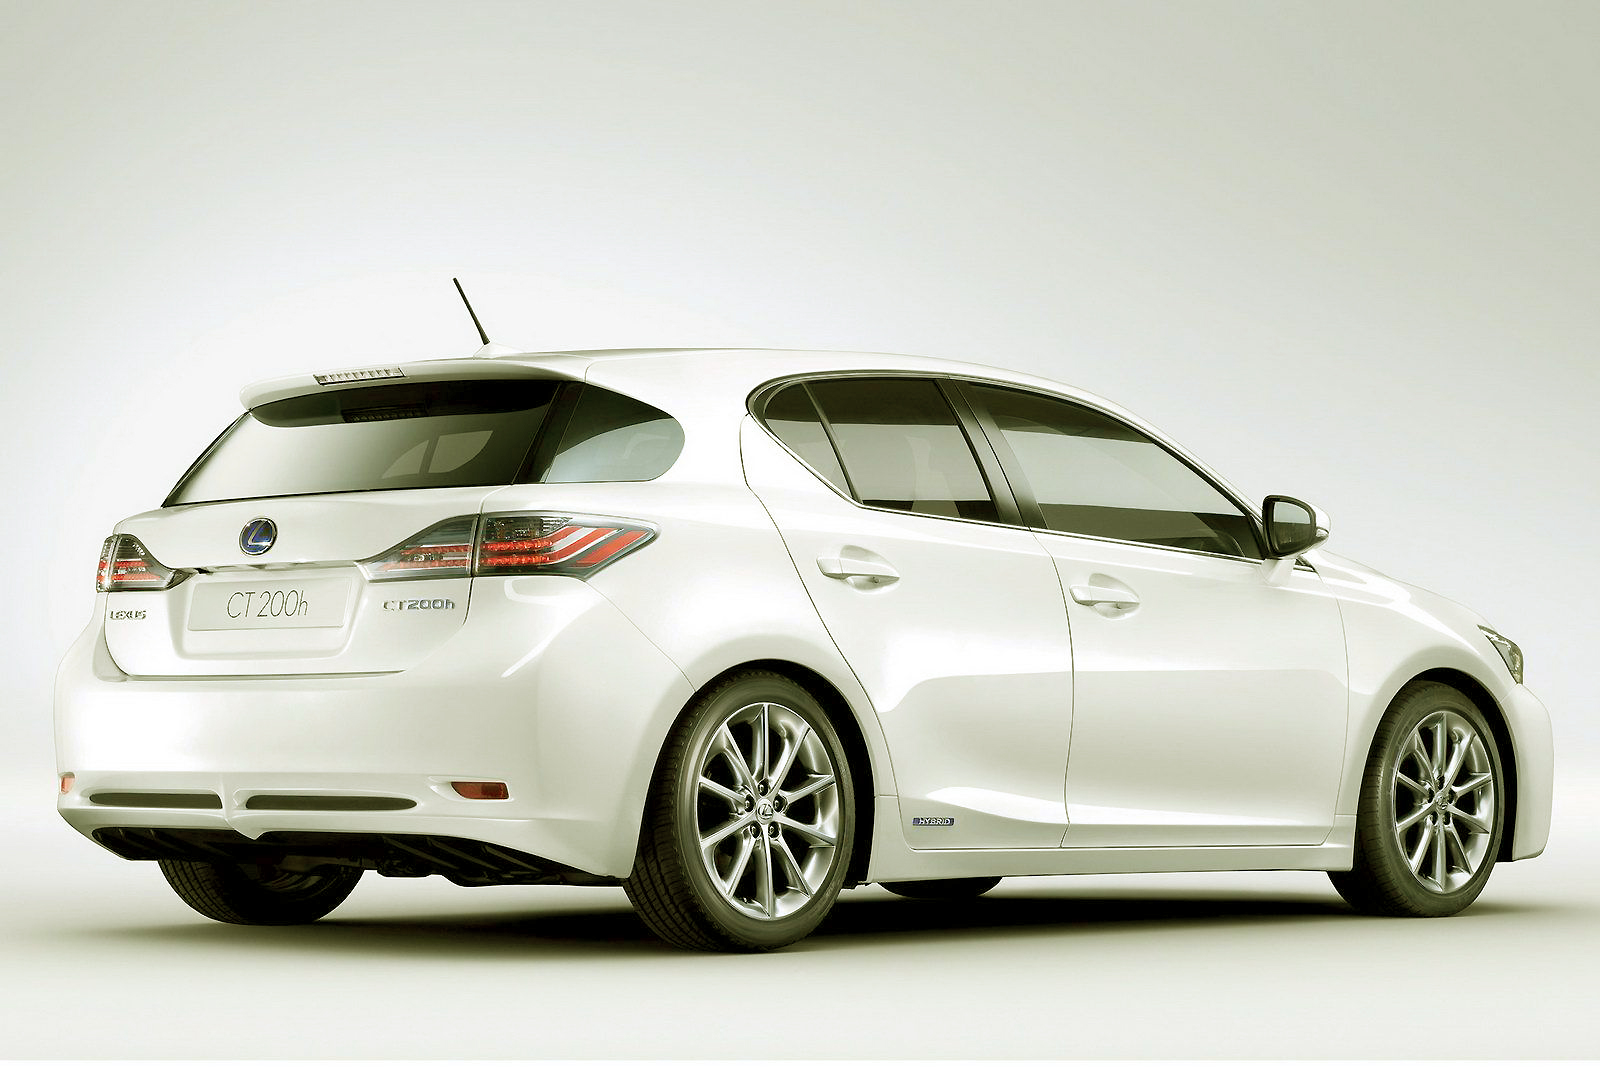 lexus ct 200h lexus is a marque that has already High Resolution Wallpaper Free